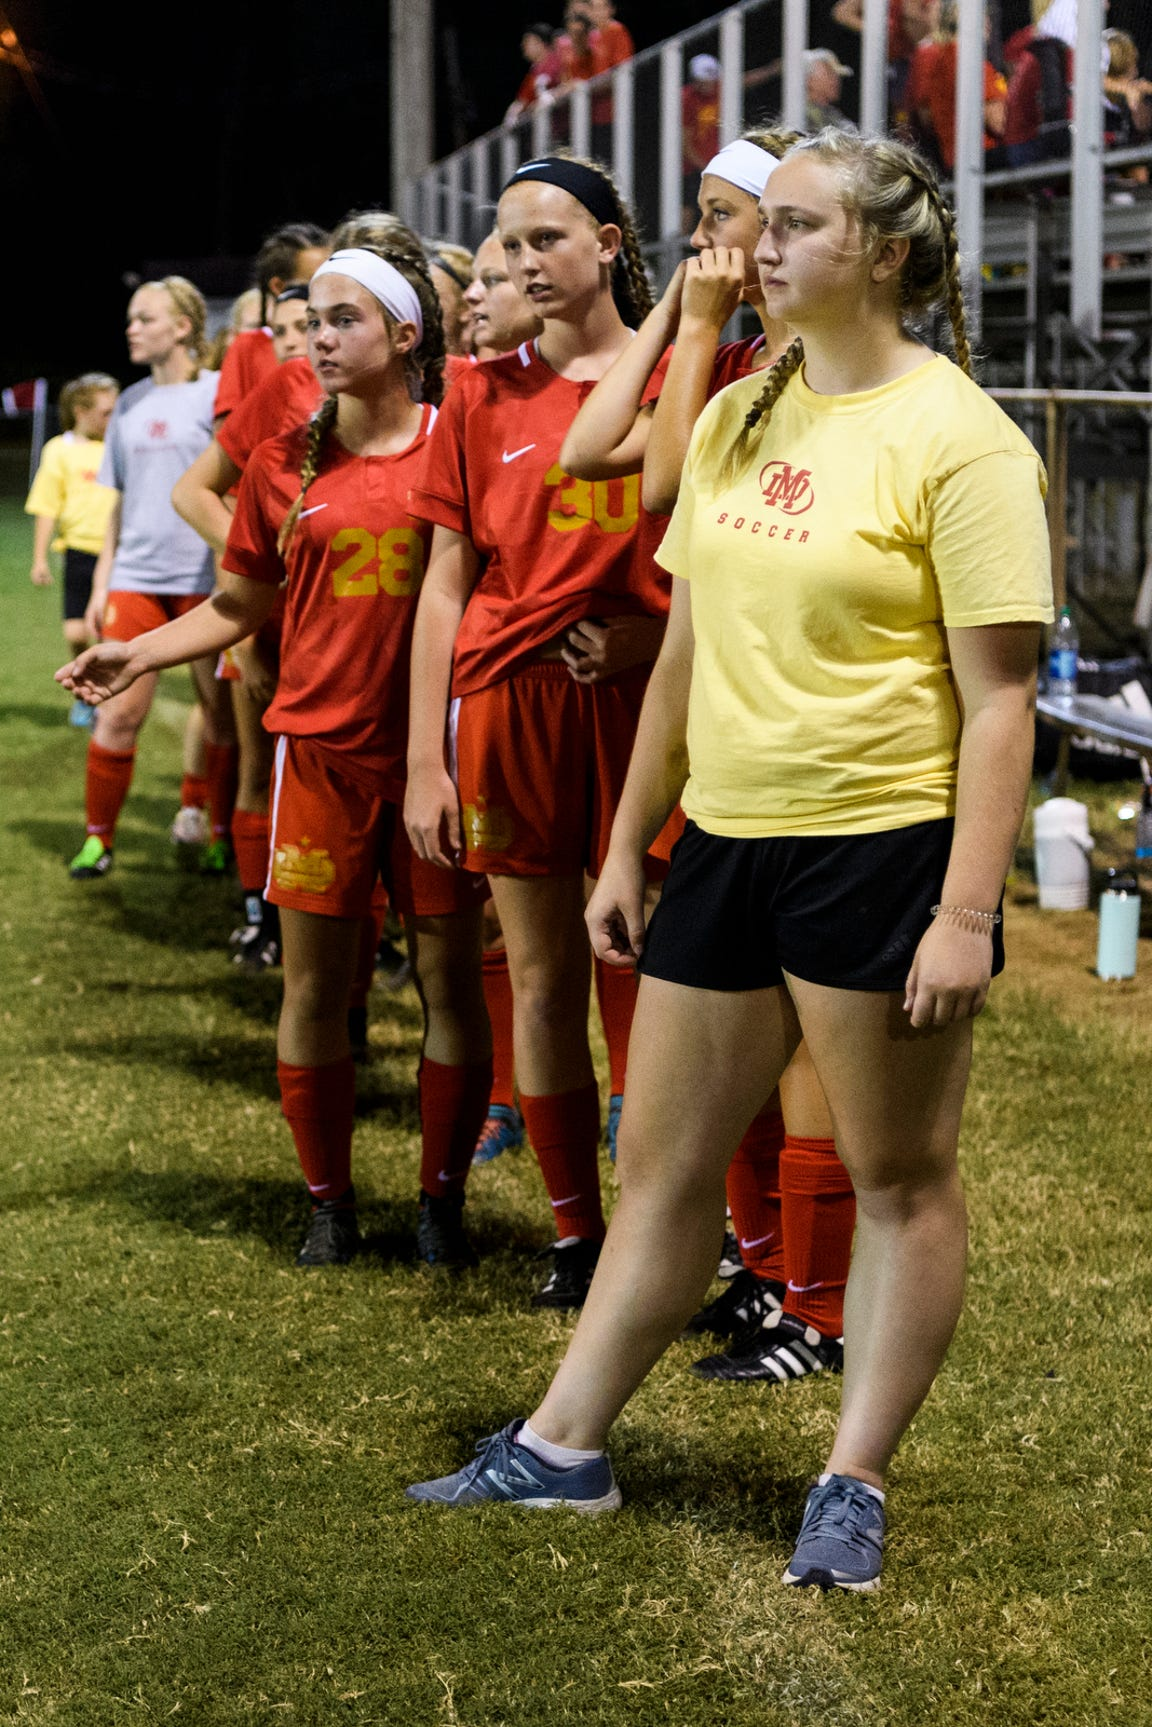 Mater Dei's Anna Bury (10), front, stands with her teammates on the sideline after taking on the Memorial Tigers at the EVSC Soccer Fields in Evansville, Ind., Monday, Aug. 20, 2018. The Tigers defeated the Wildcats 4-0.